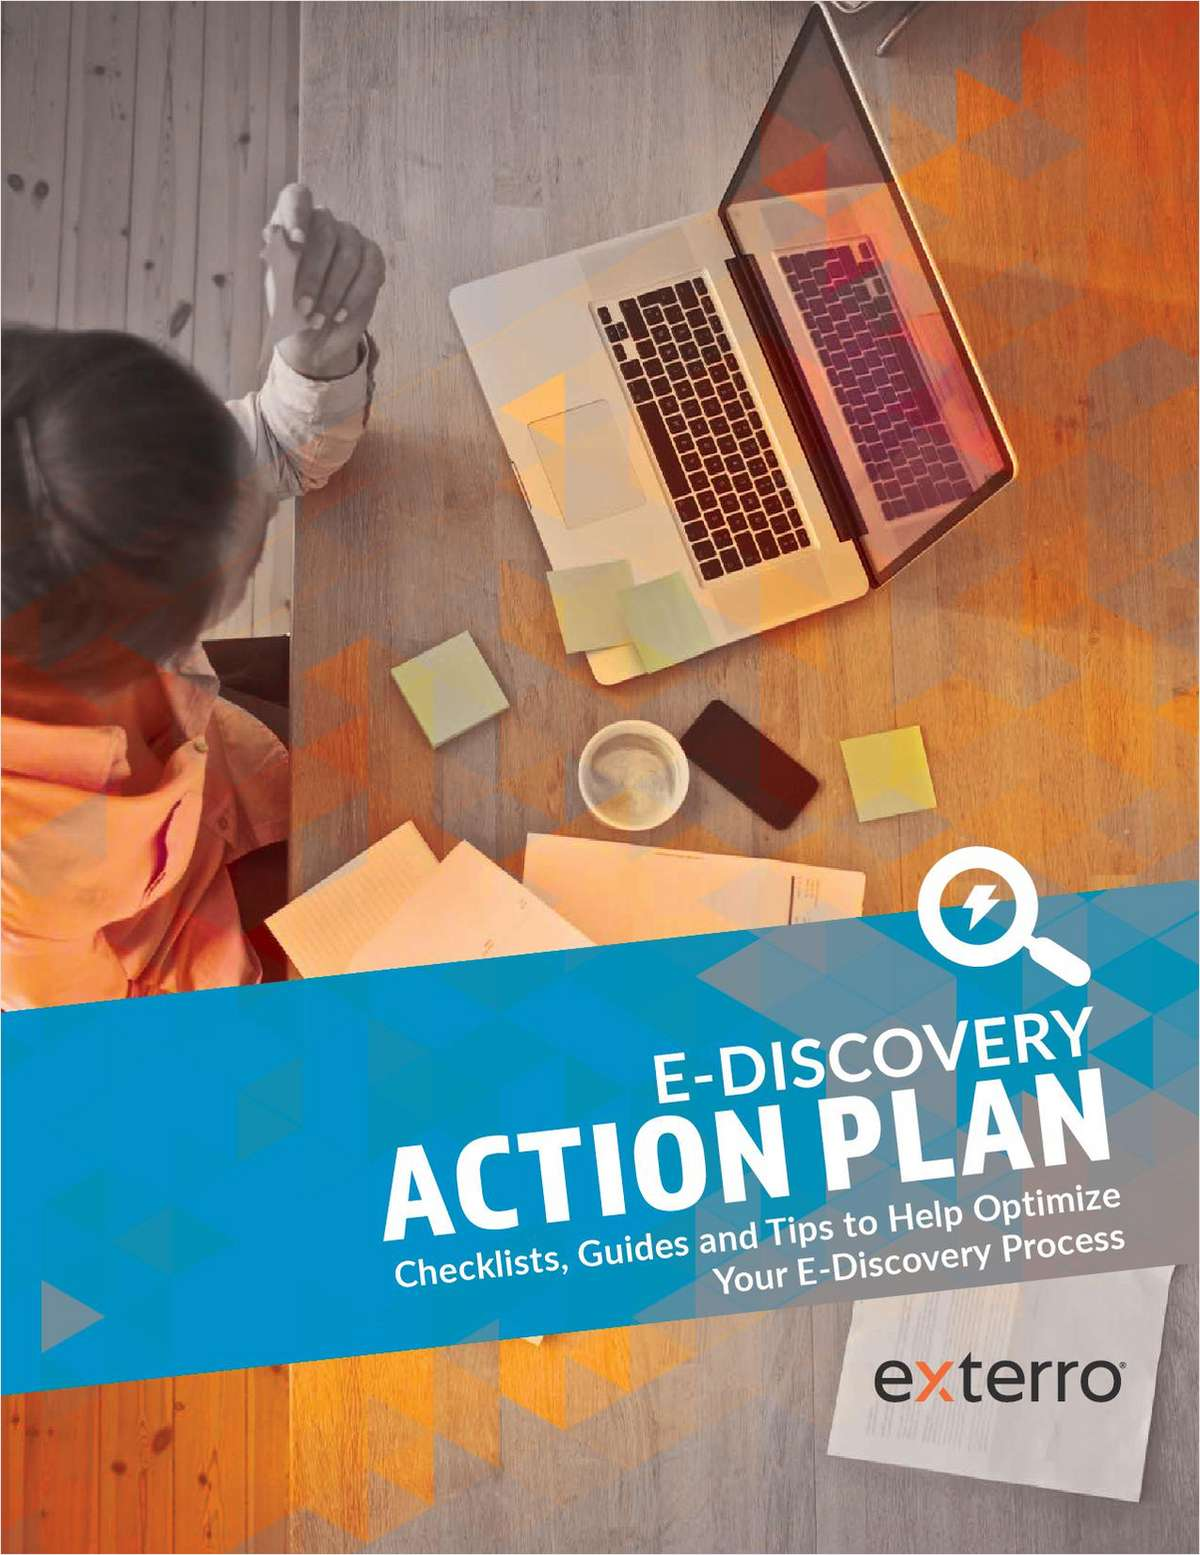 E-Discovery Action Plan: Checklists, Guides and Tips to Help Optimize Your E-Discovery Process